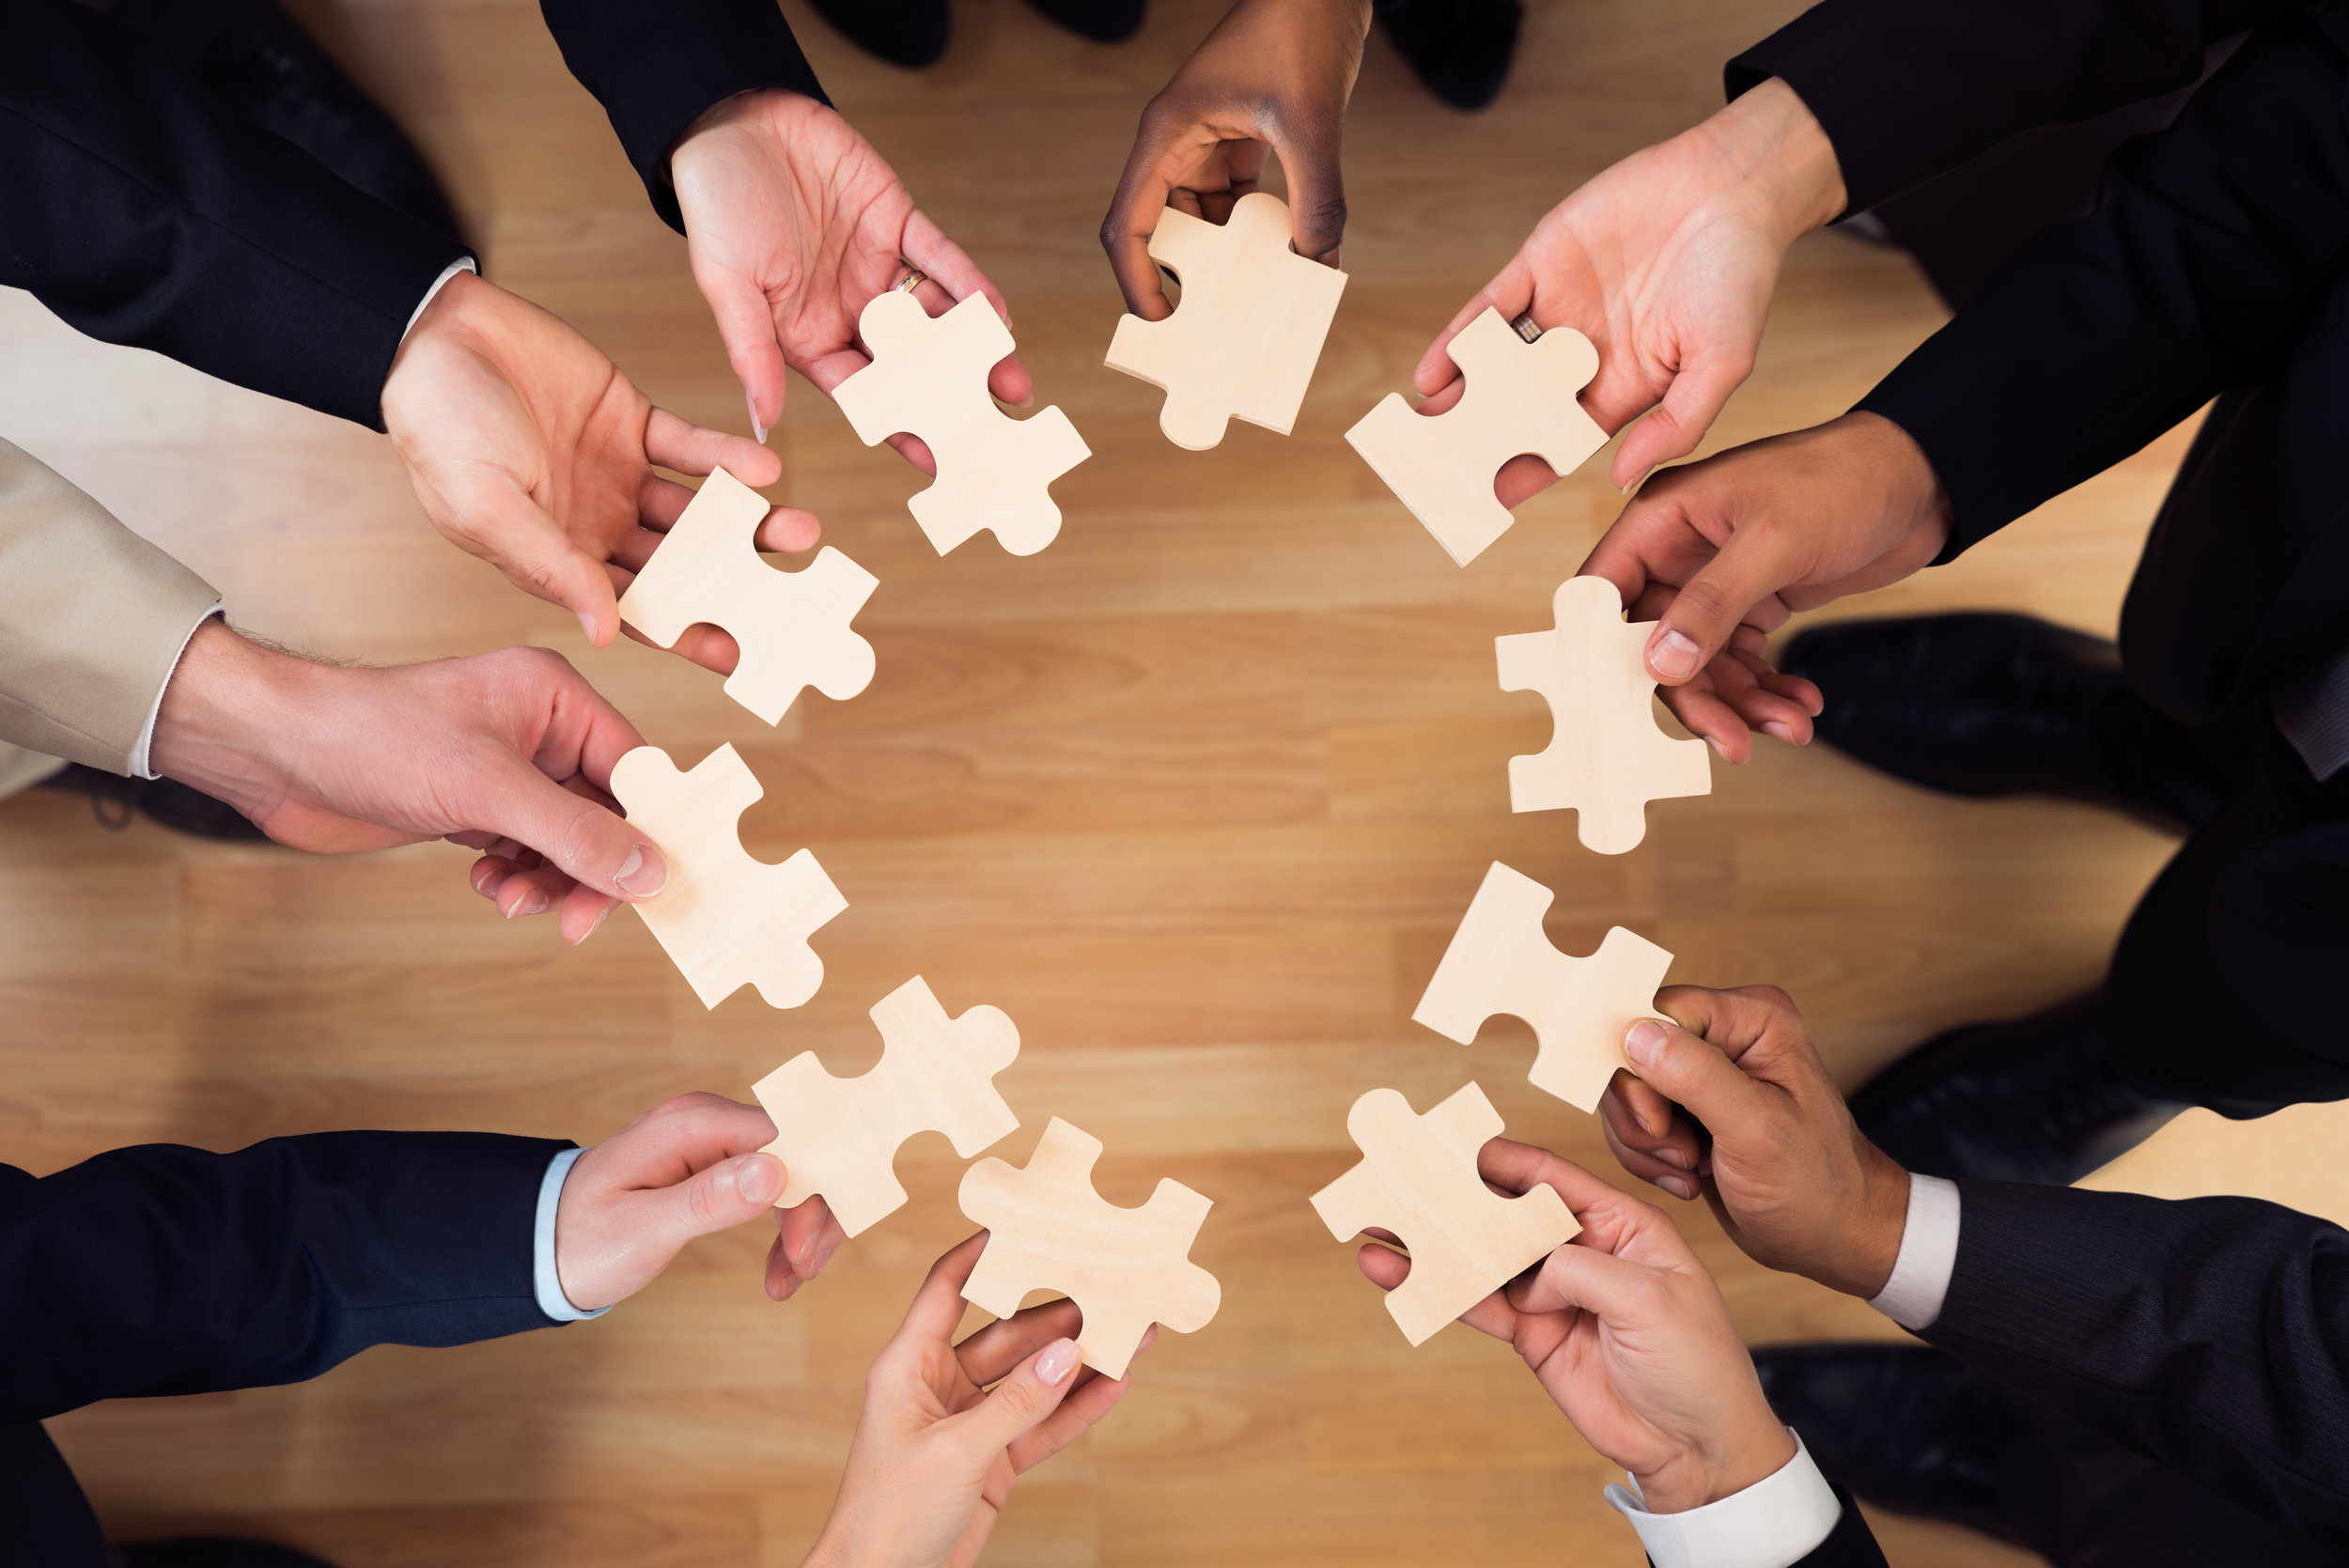 puzzle group_shutterstock_344611349.jpg